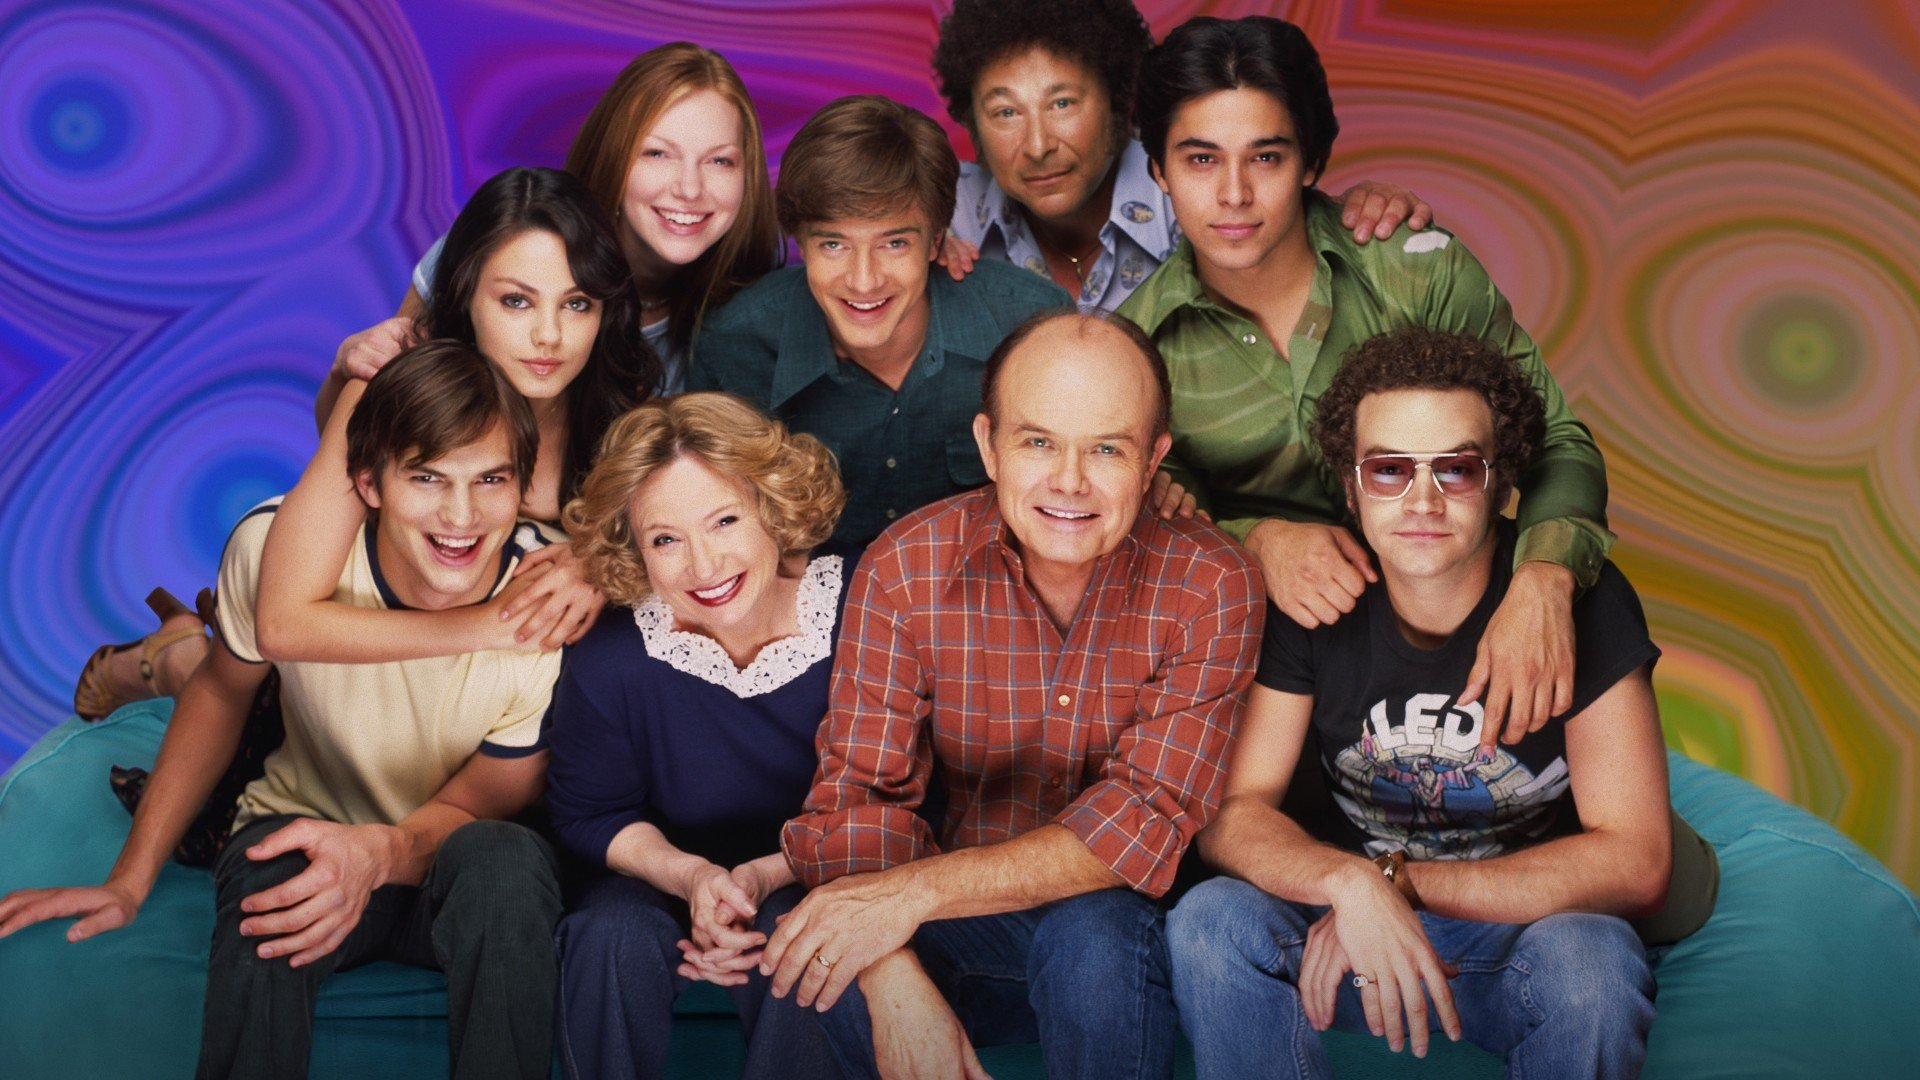 TV Show - That '70s Show  That 70's Show Danny Masterson Steven Hyde Laura Prepon Donna Pinciotti Kurtwood Smith Red Forman Debra Jo Rupp Kitty Forman Ashton Kutcher Wallpaper